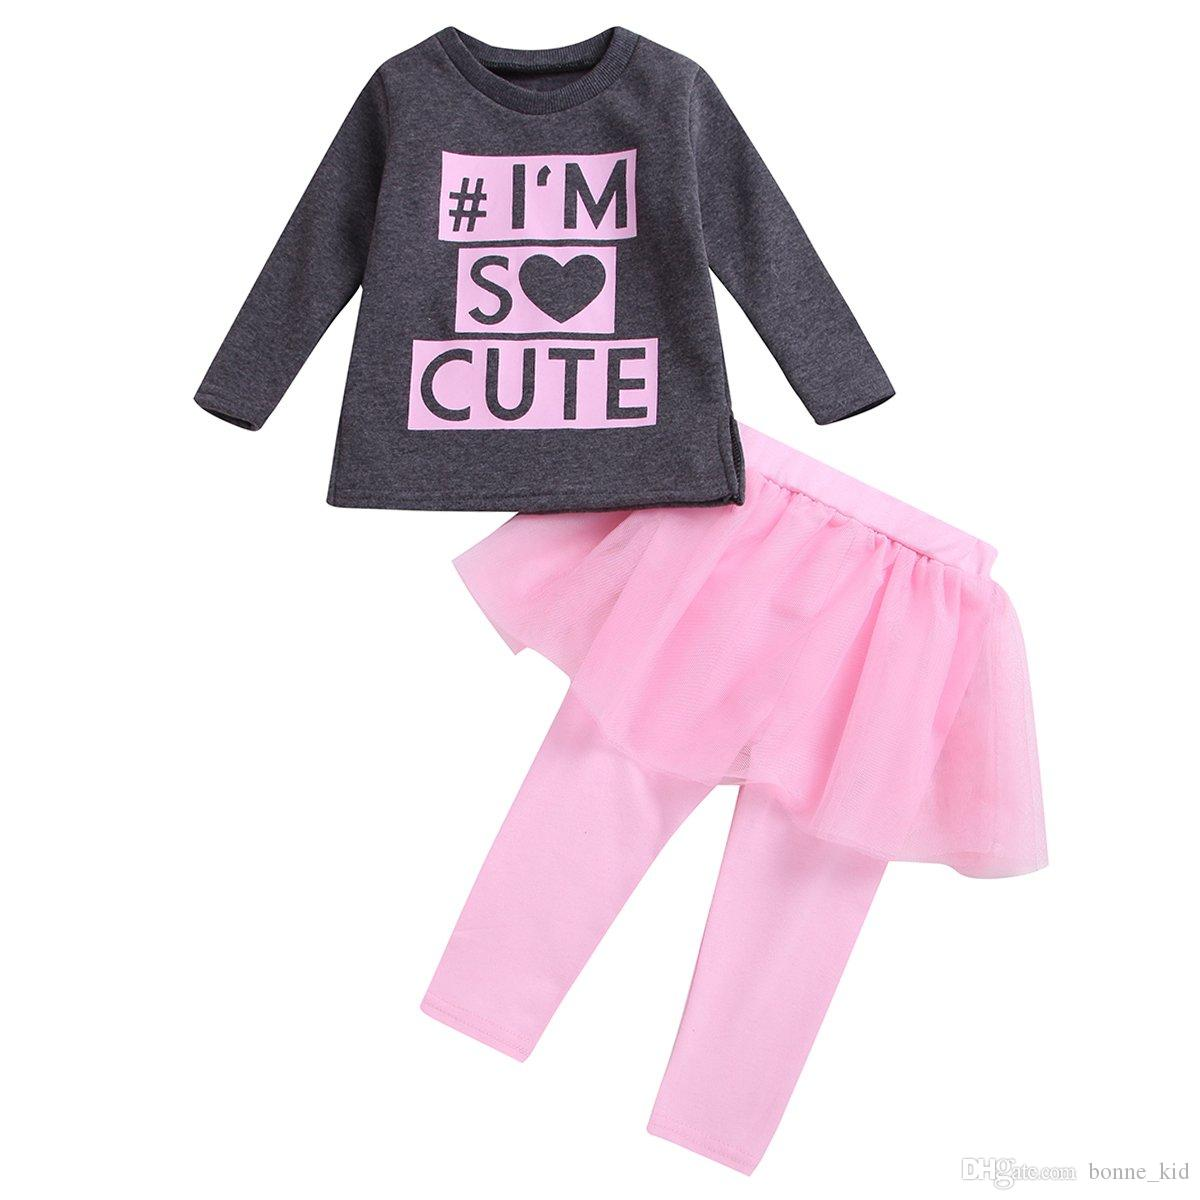 82b95a3a7d35 2019 Kids Baby Girls Tutu Dresses Outfits Long Sleeves Black T Shirt Tops  Pink Pants Dress Set Clothing Letter Print I'M So Cute 1 6Y From Bonne_kid,  ...